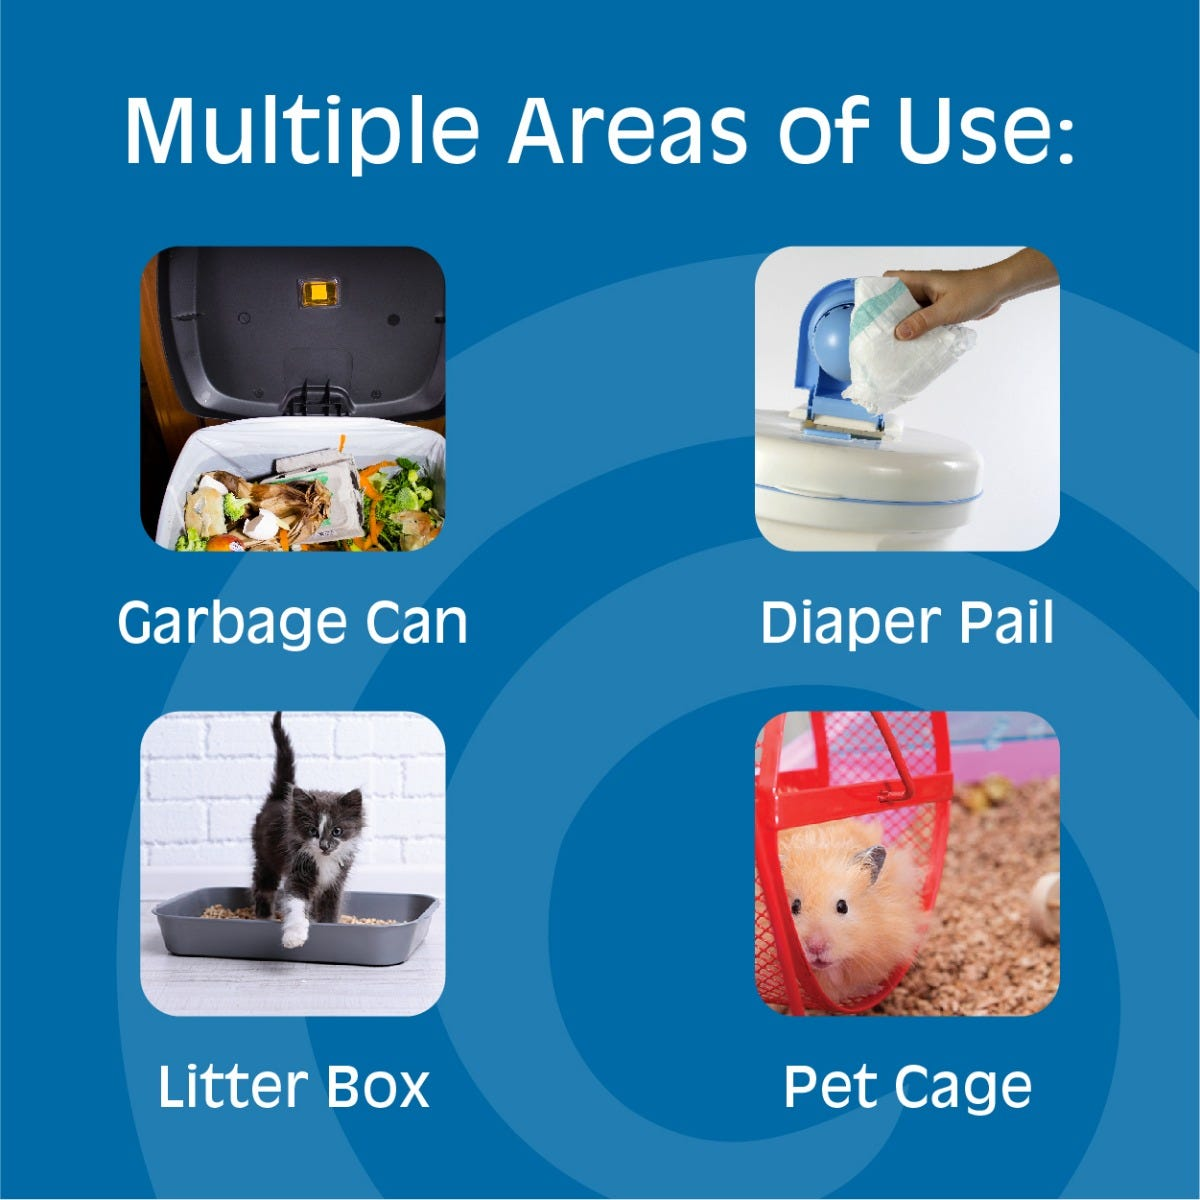 Use on diaper pails or in pet areas